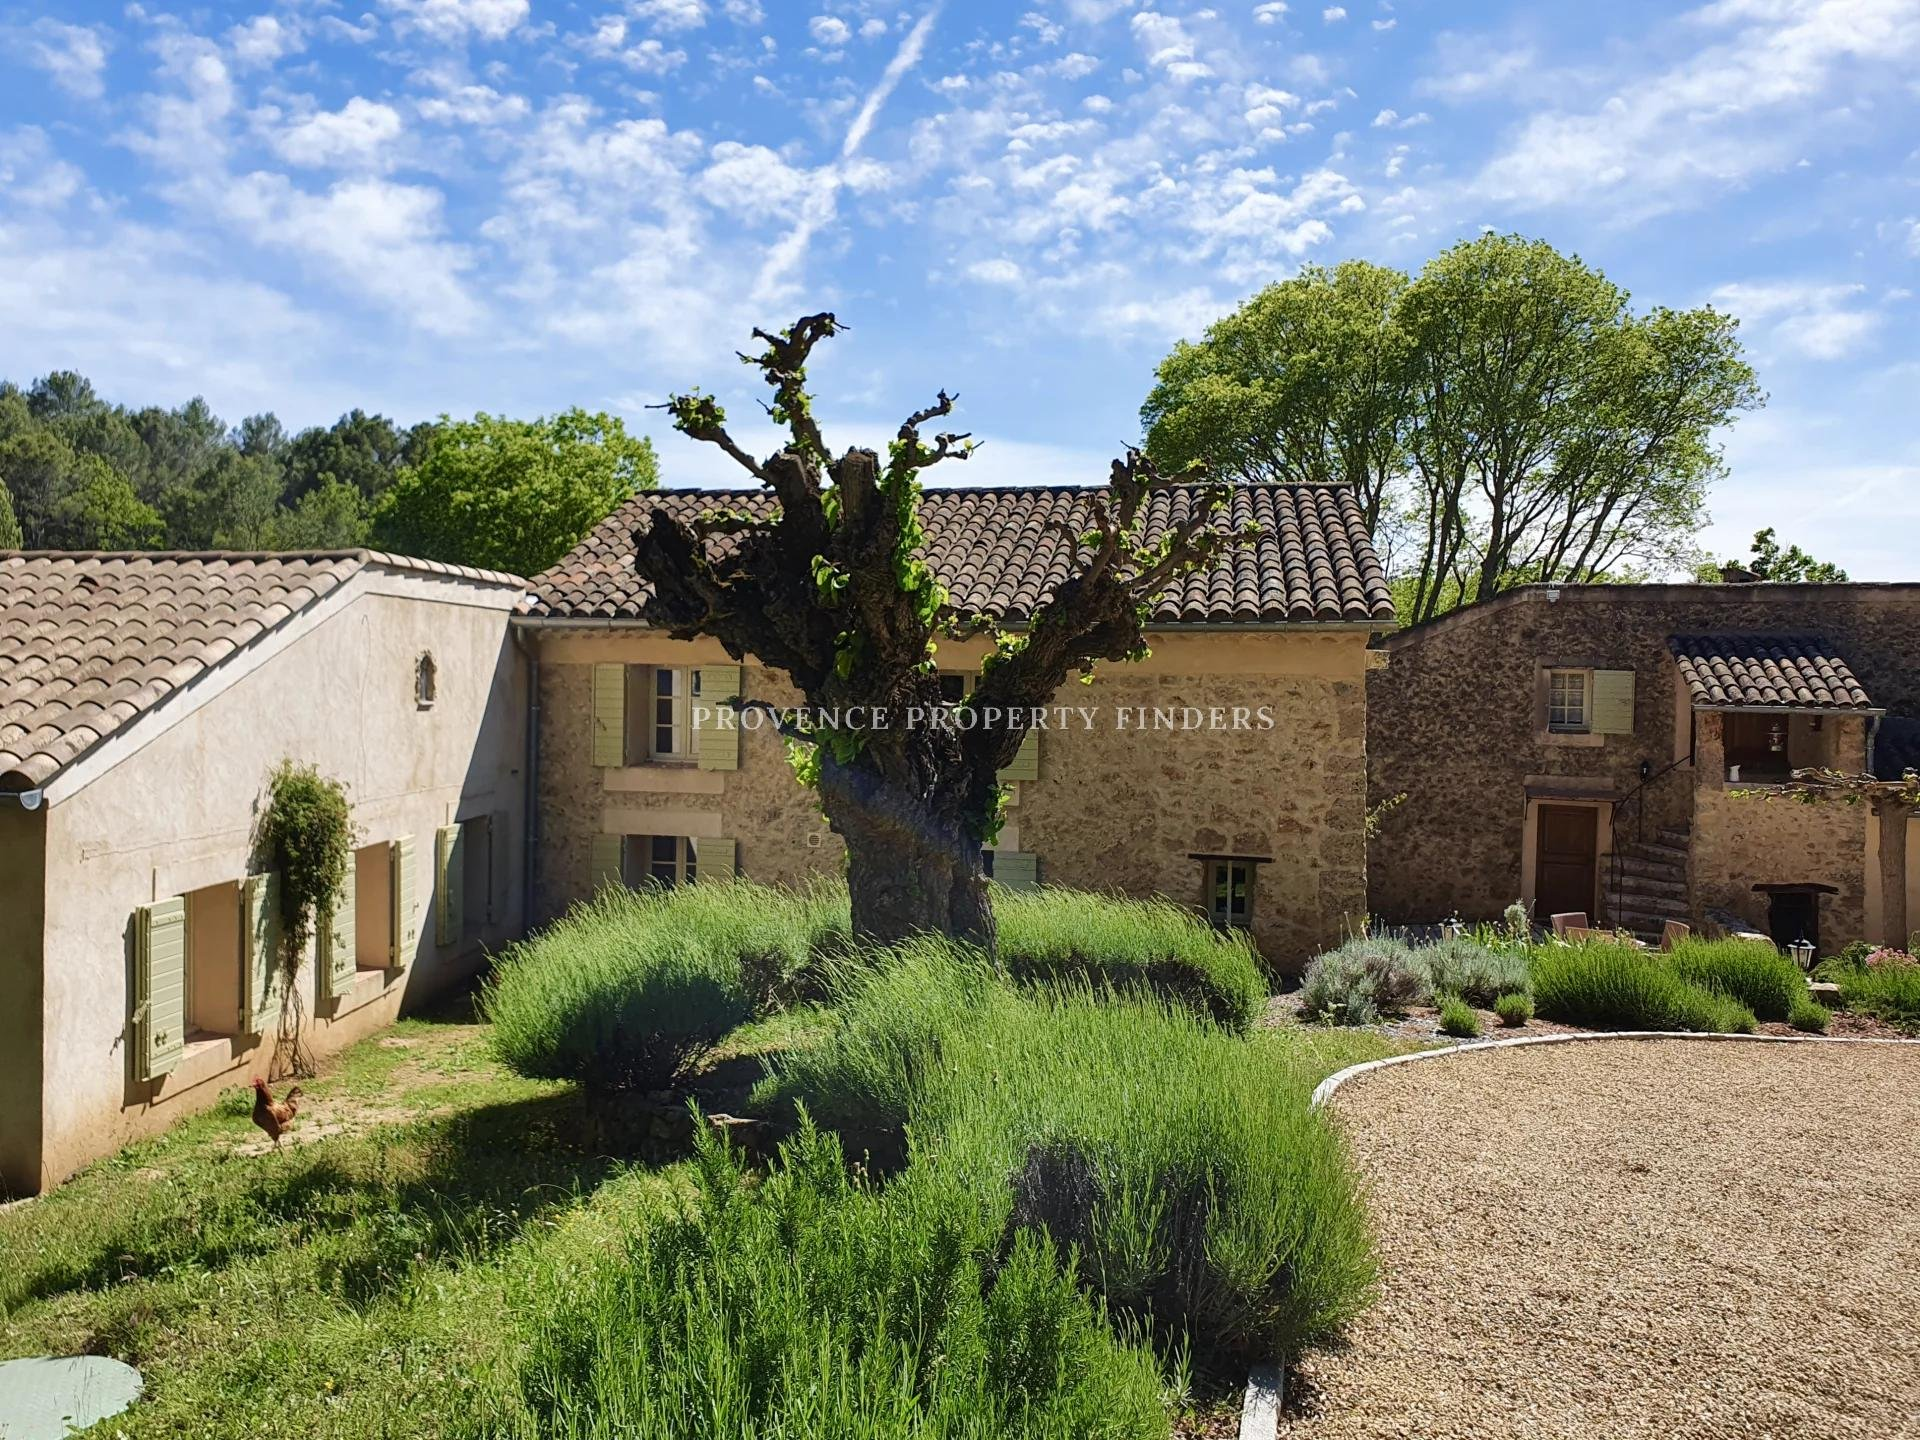 Old renovated farmhouse, 5 bedrooms, guest rooms, heated pool. Perfect location